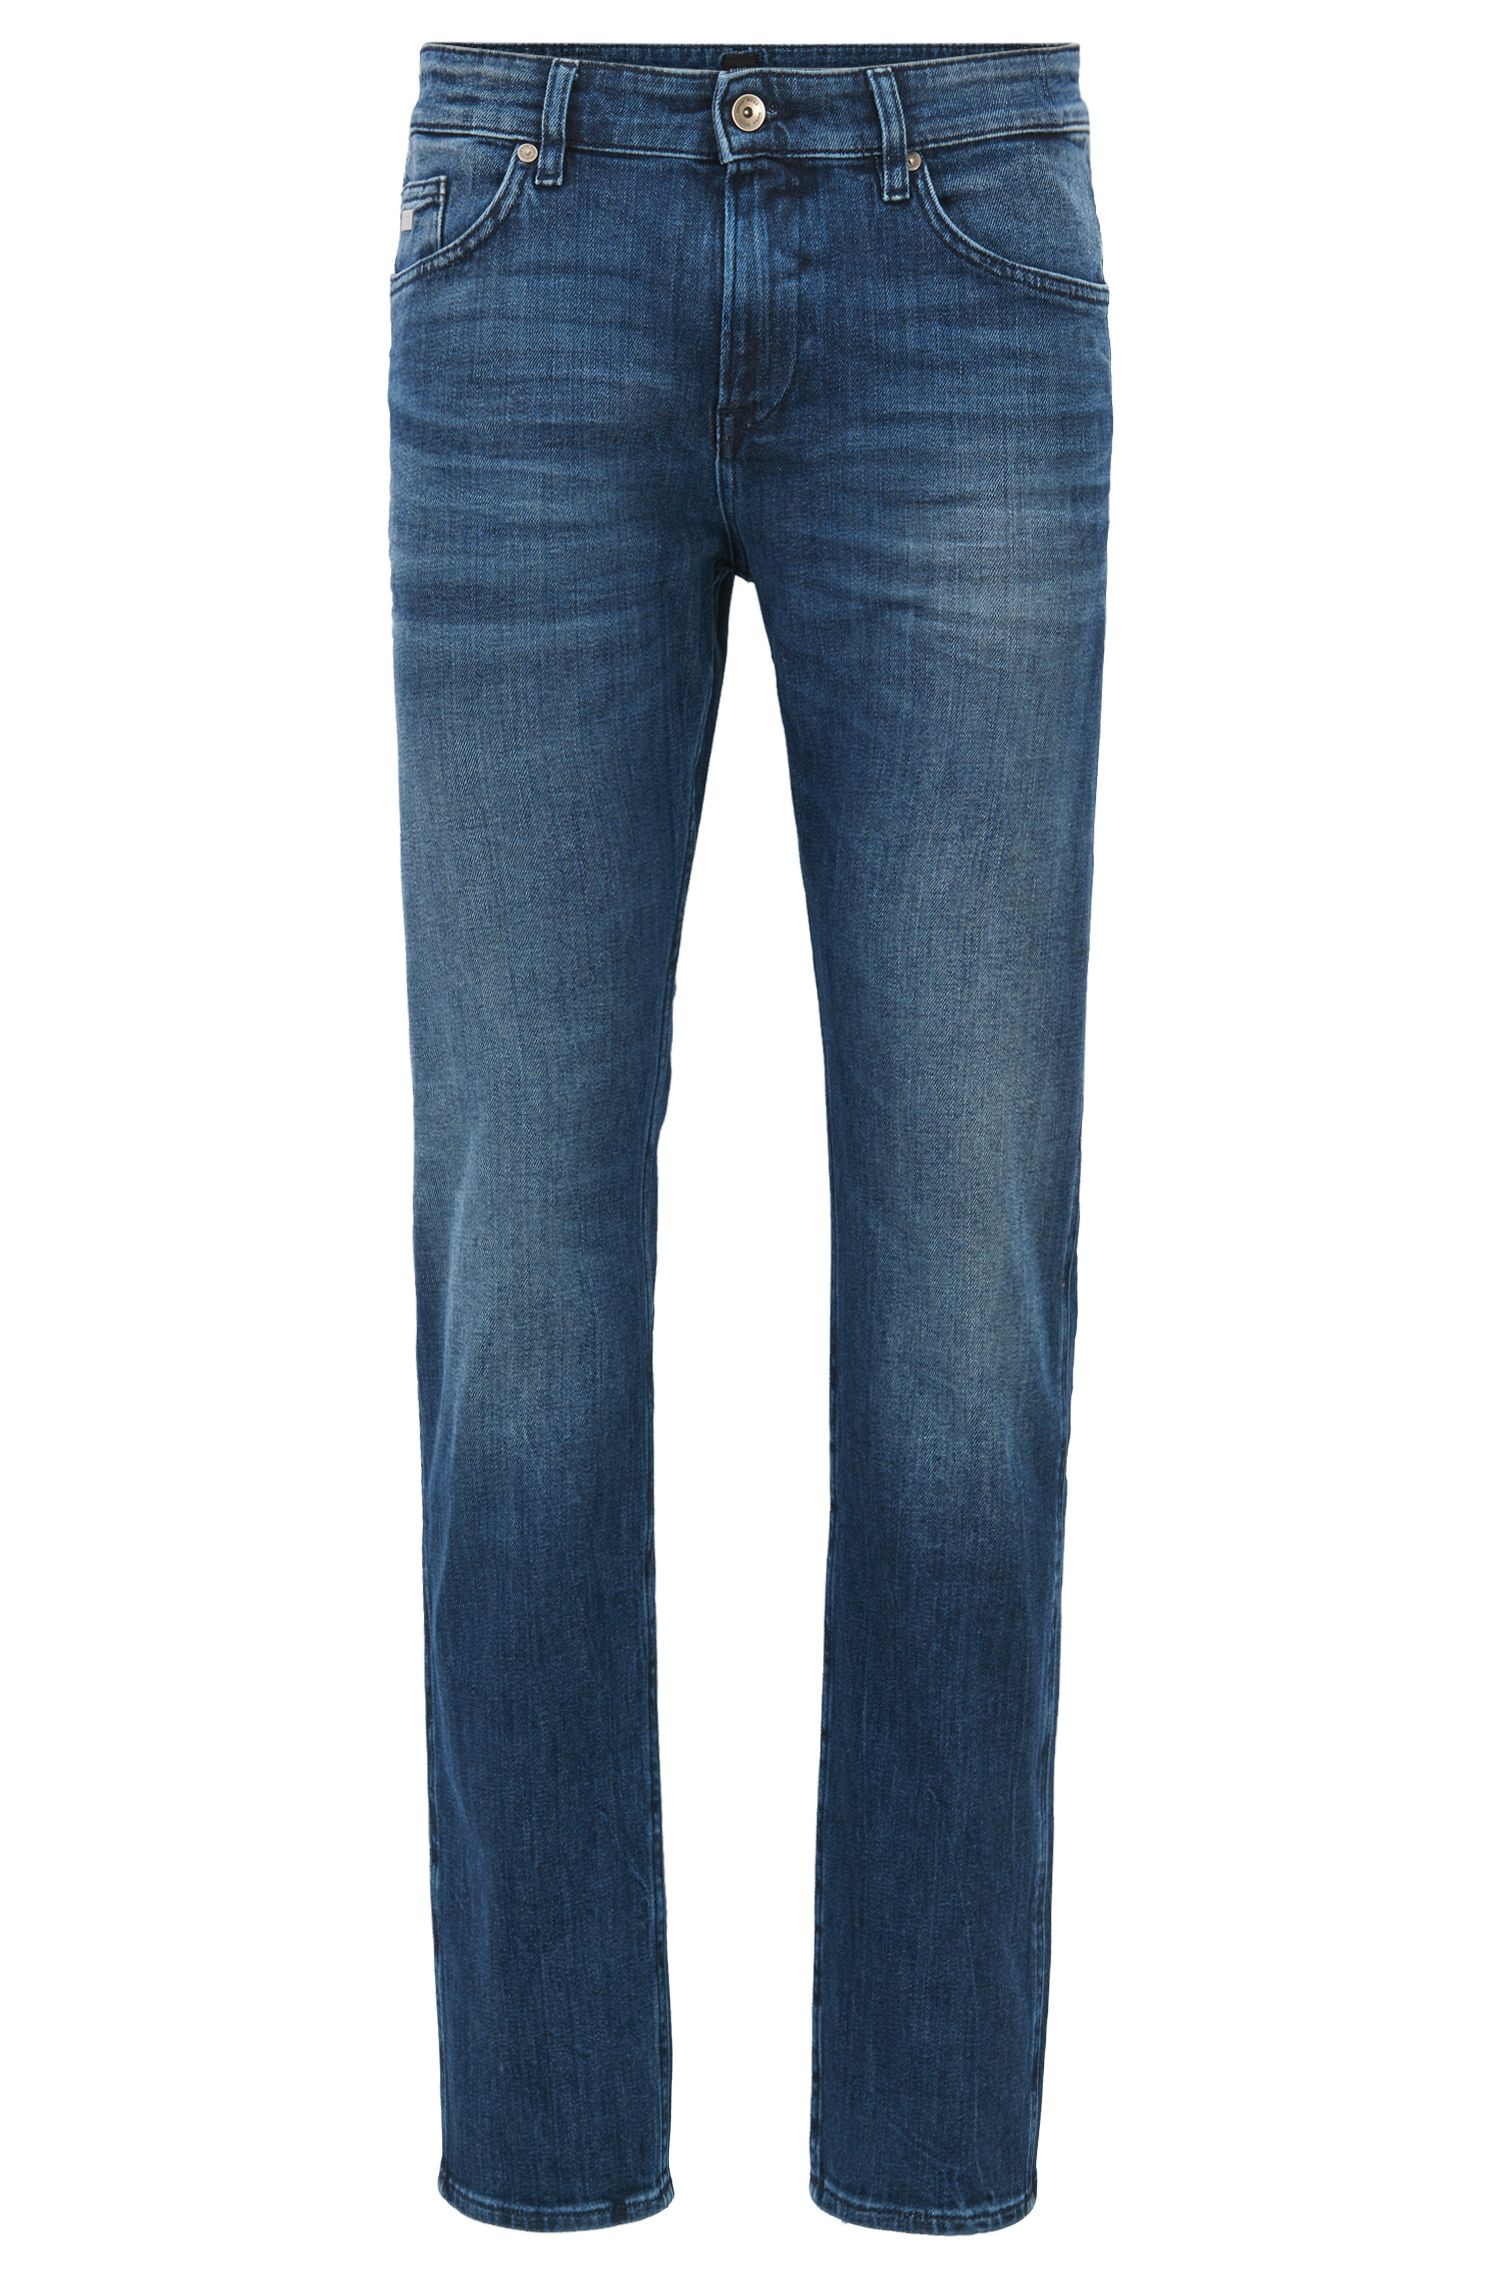 Jeans slim fit in denim con lavaggio medio